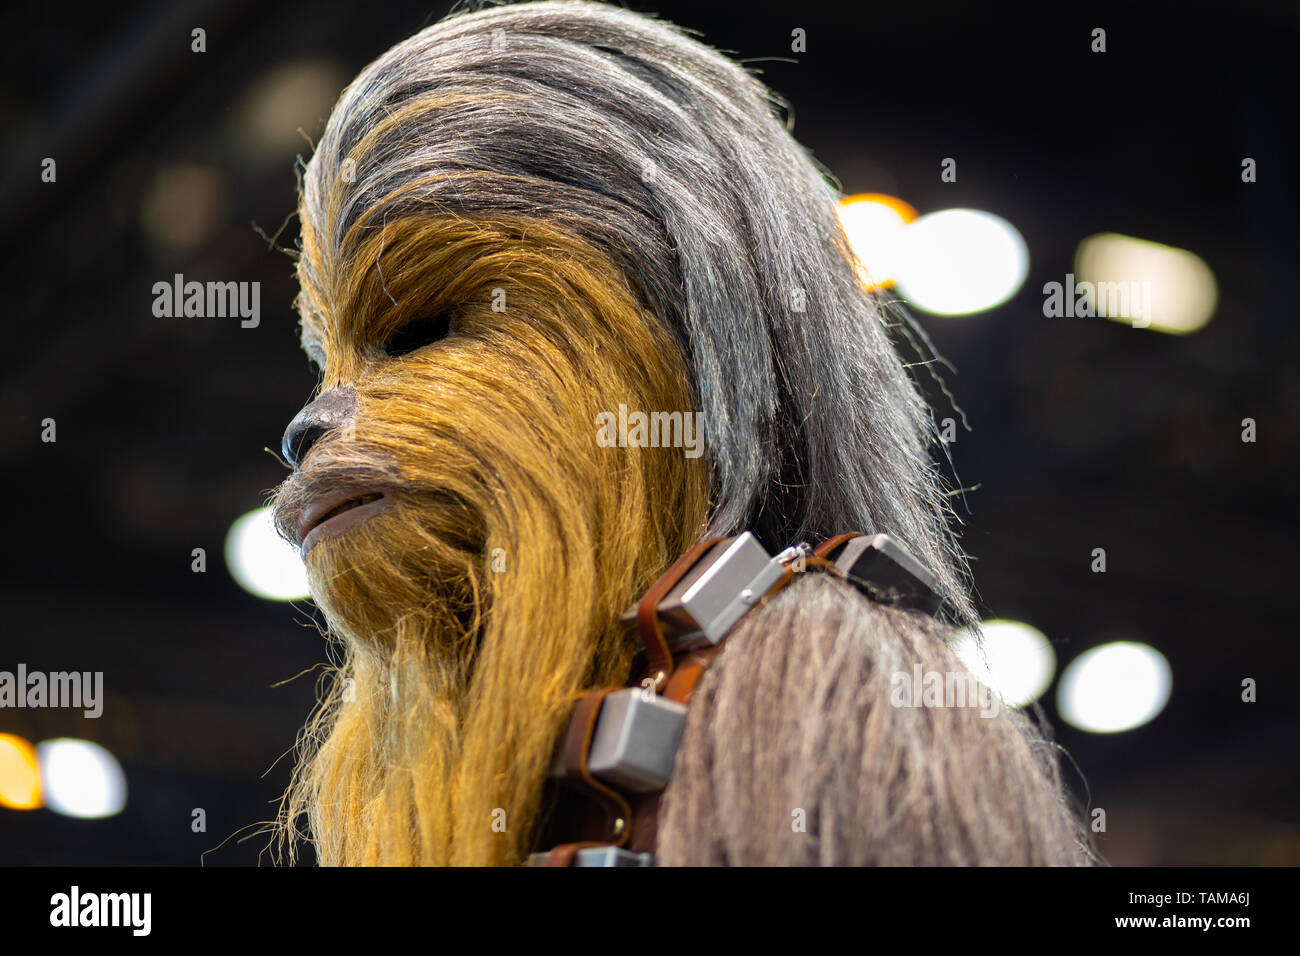 Chewbacca cosplay at Star Wars Celebration 2019 - Chicago, IL - Stock Image